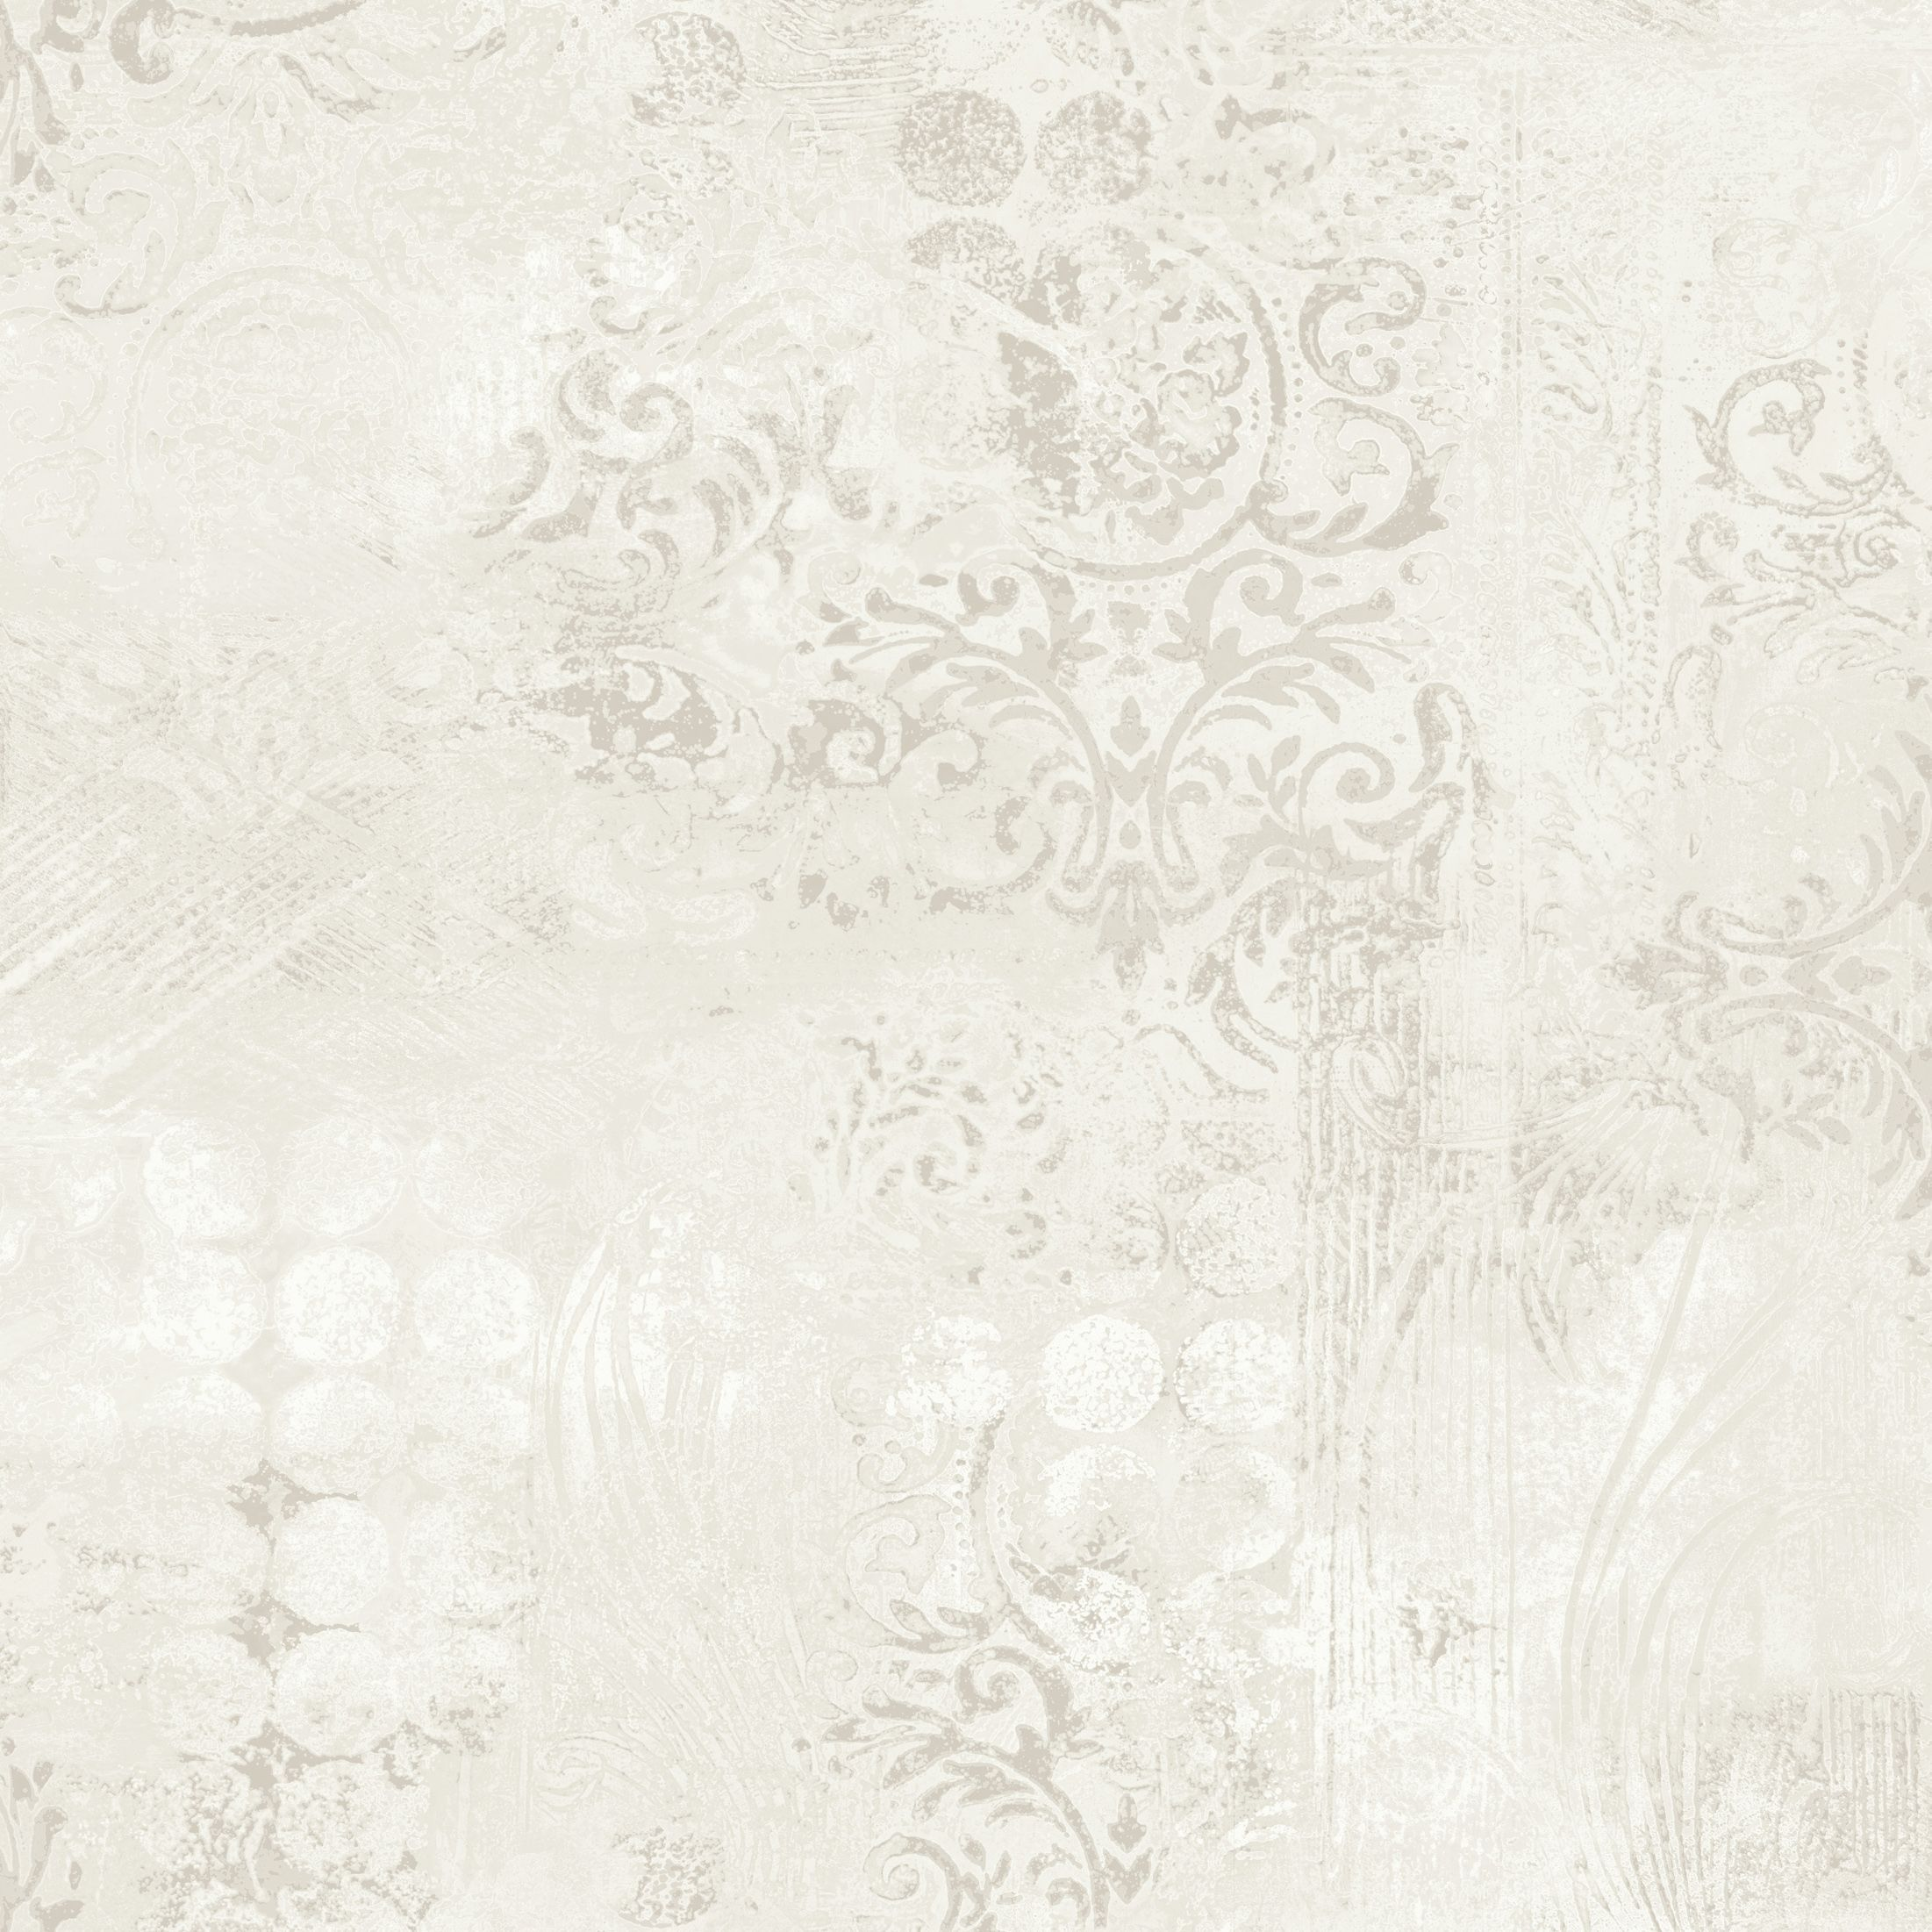 Roselea Soft Grey Texture Metallic Mica Wallpaper